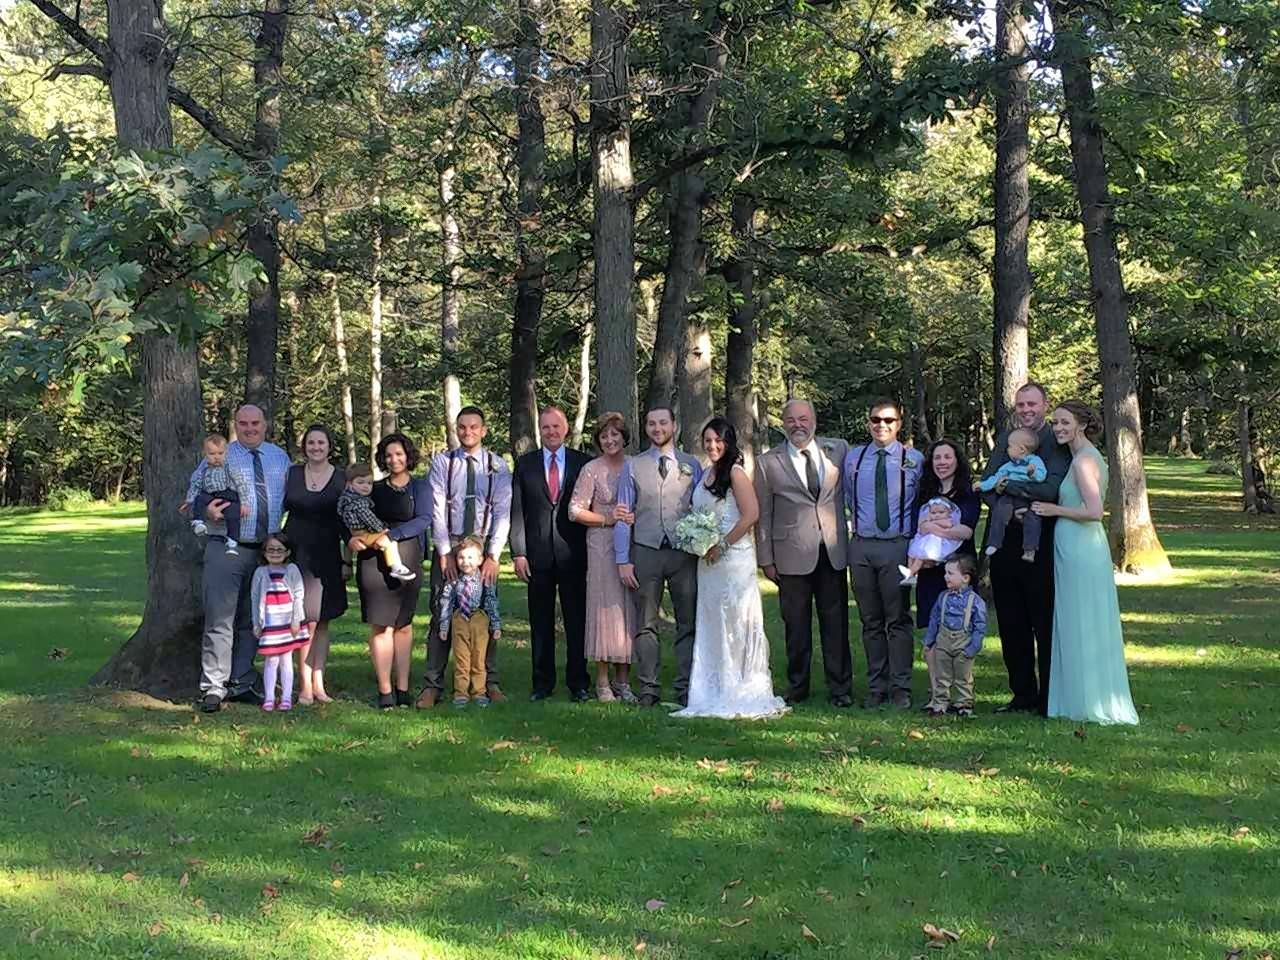 Gary Christenson, who died Jan. 13, had a deep love for family. Here is the entire family at his son Josh Christenson's wedding in 2016.